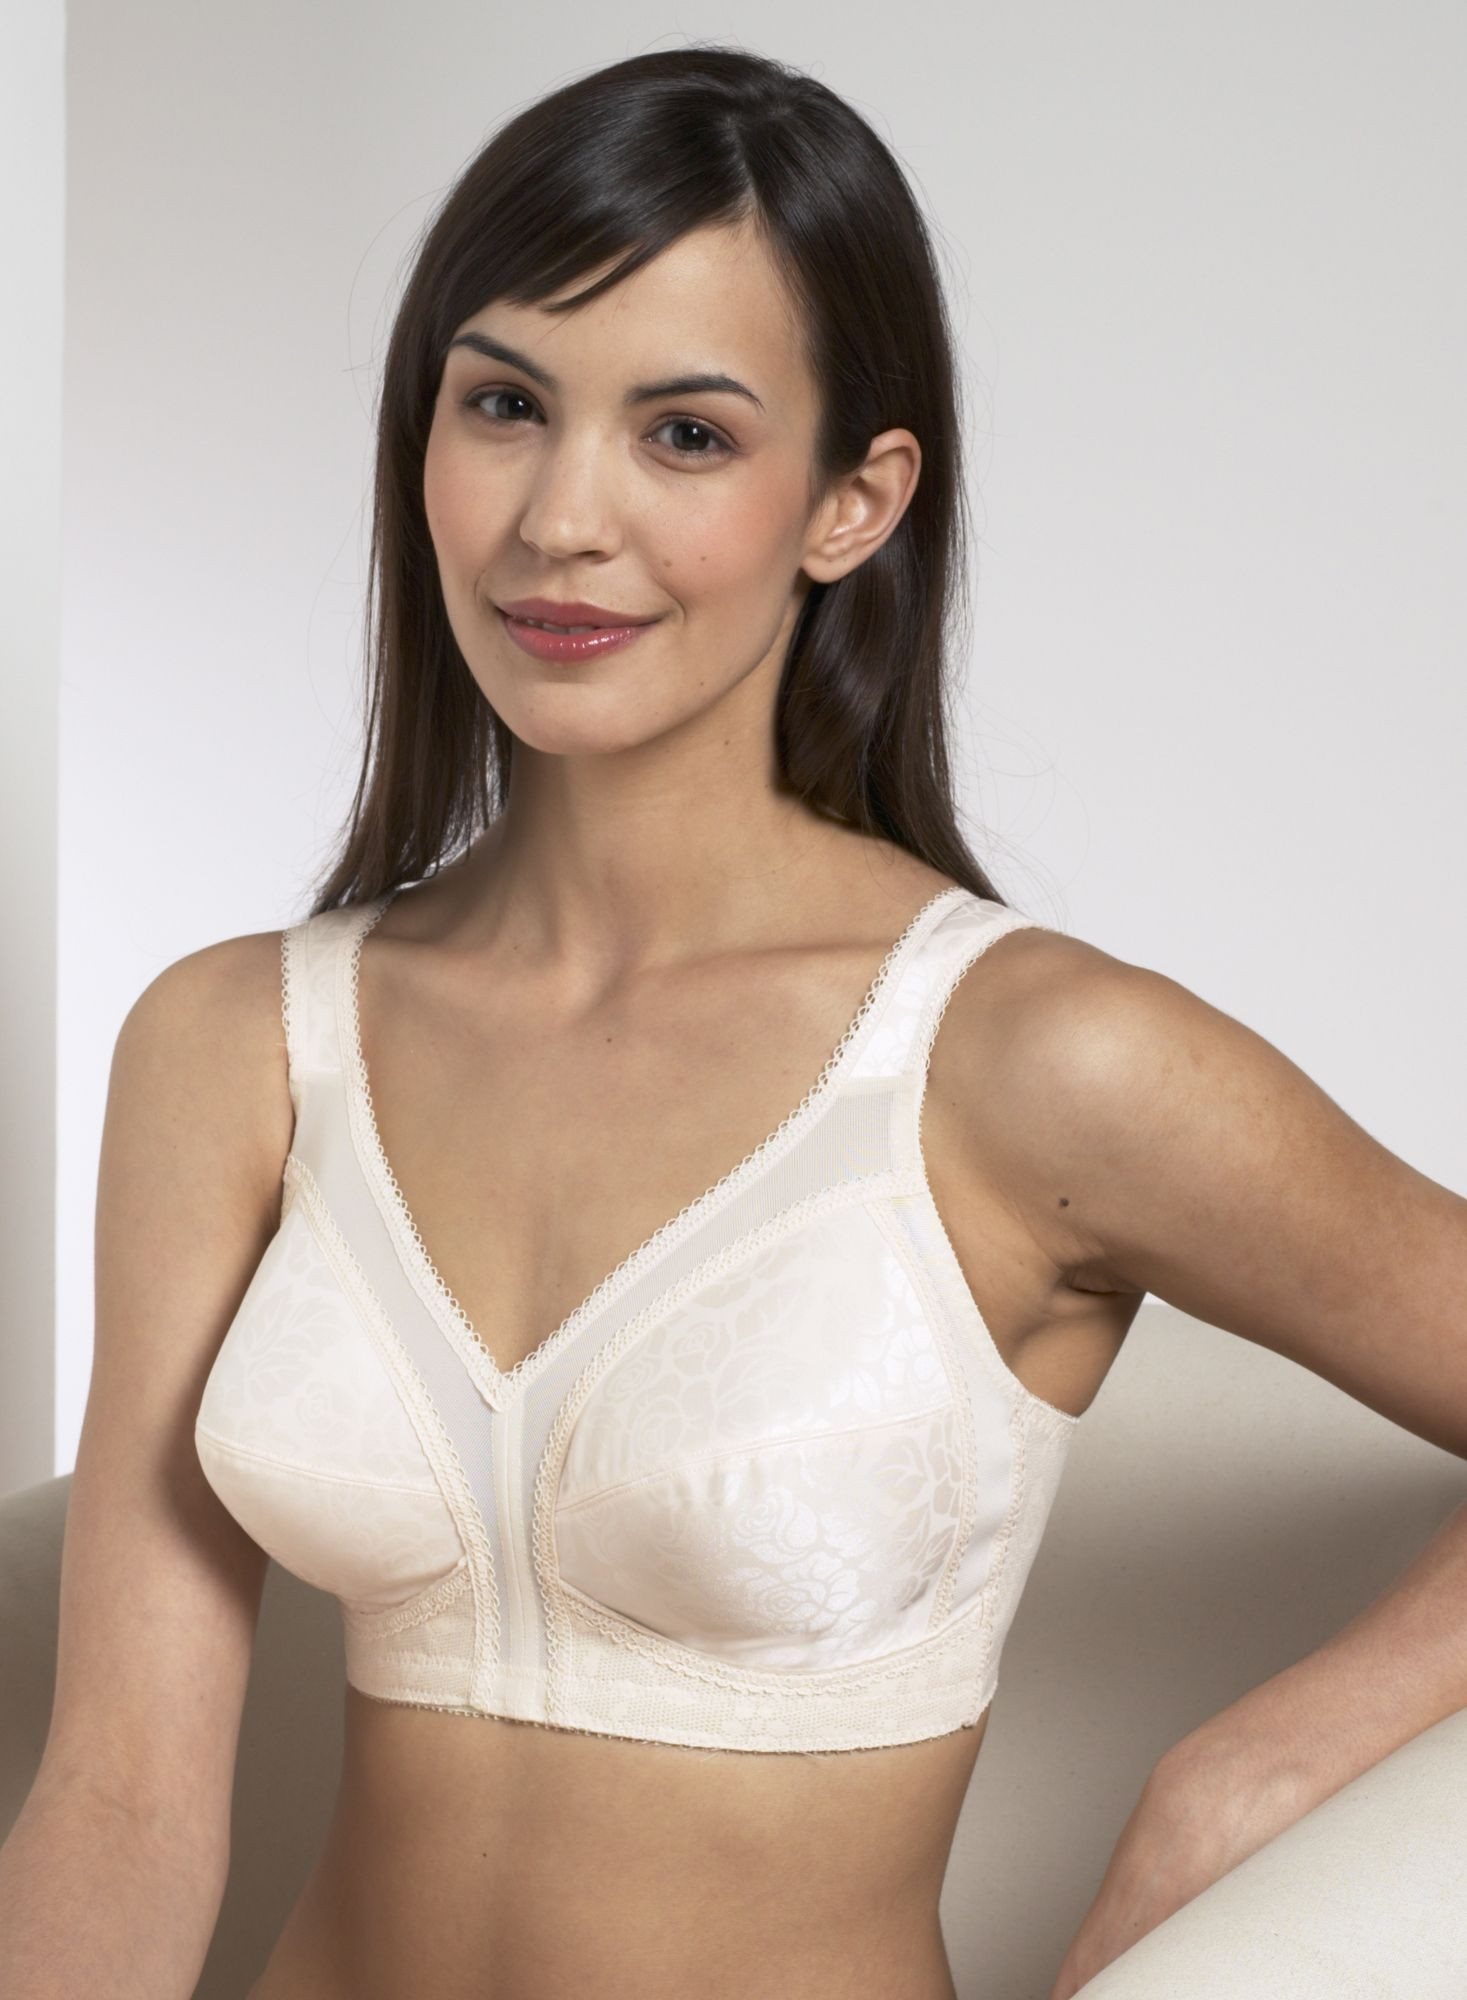 Est. 3 Pallets of Timeless Comfort Women's Soft Cup Bras, 3 Ext. Retail $84,700, Kings Mountain, NC